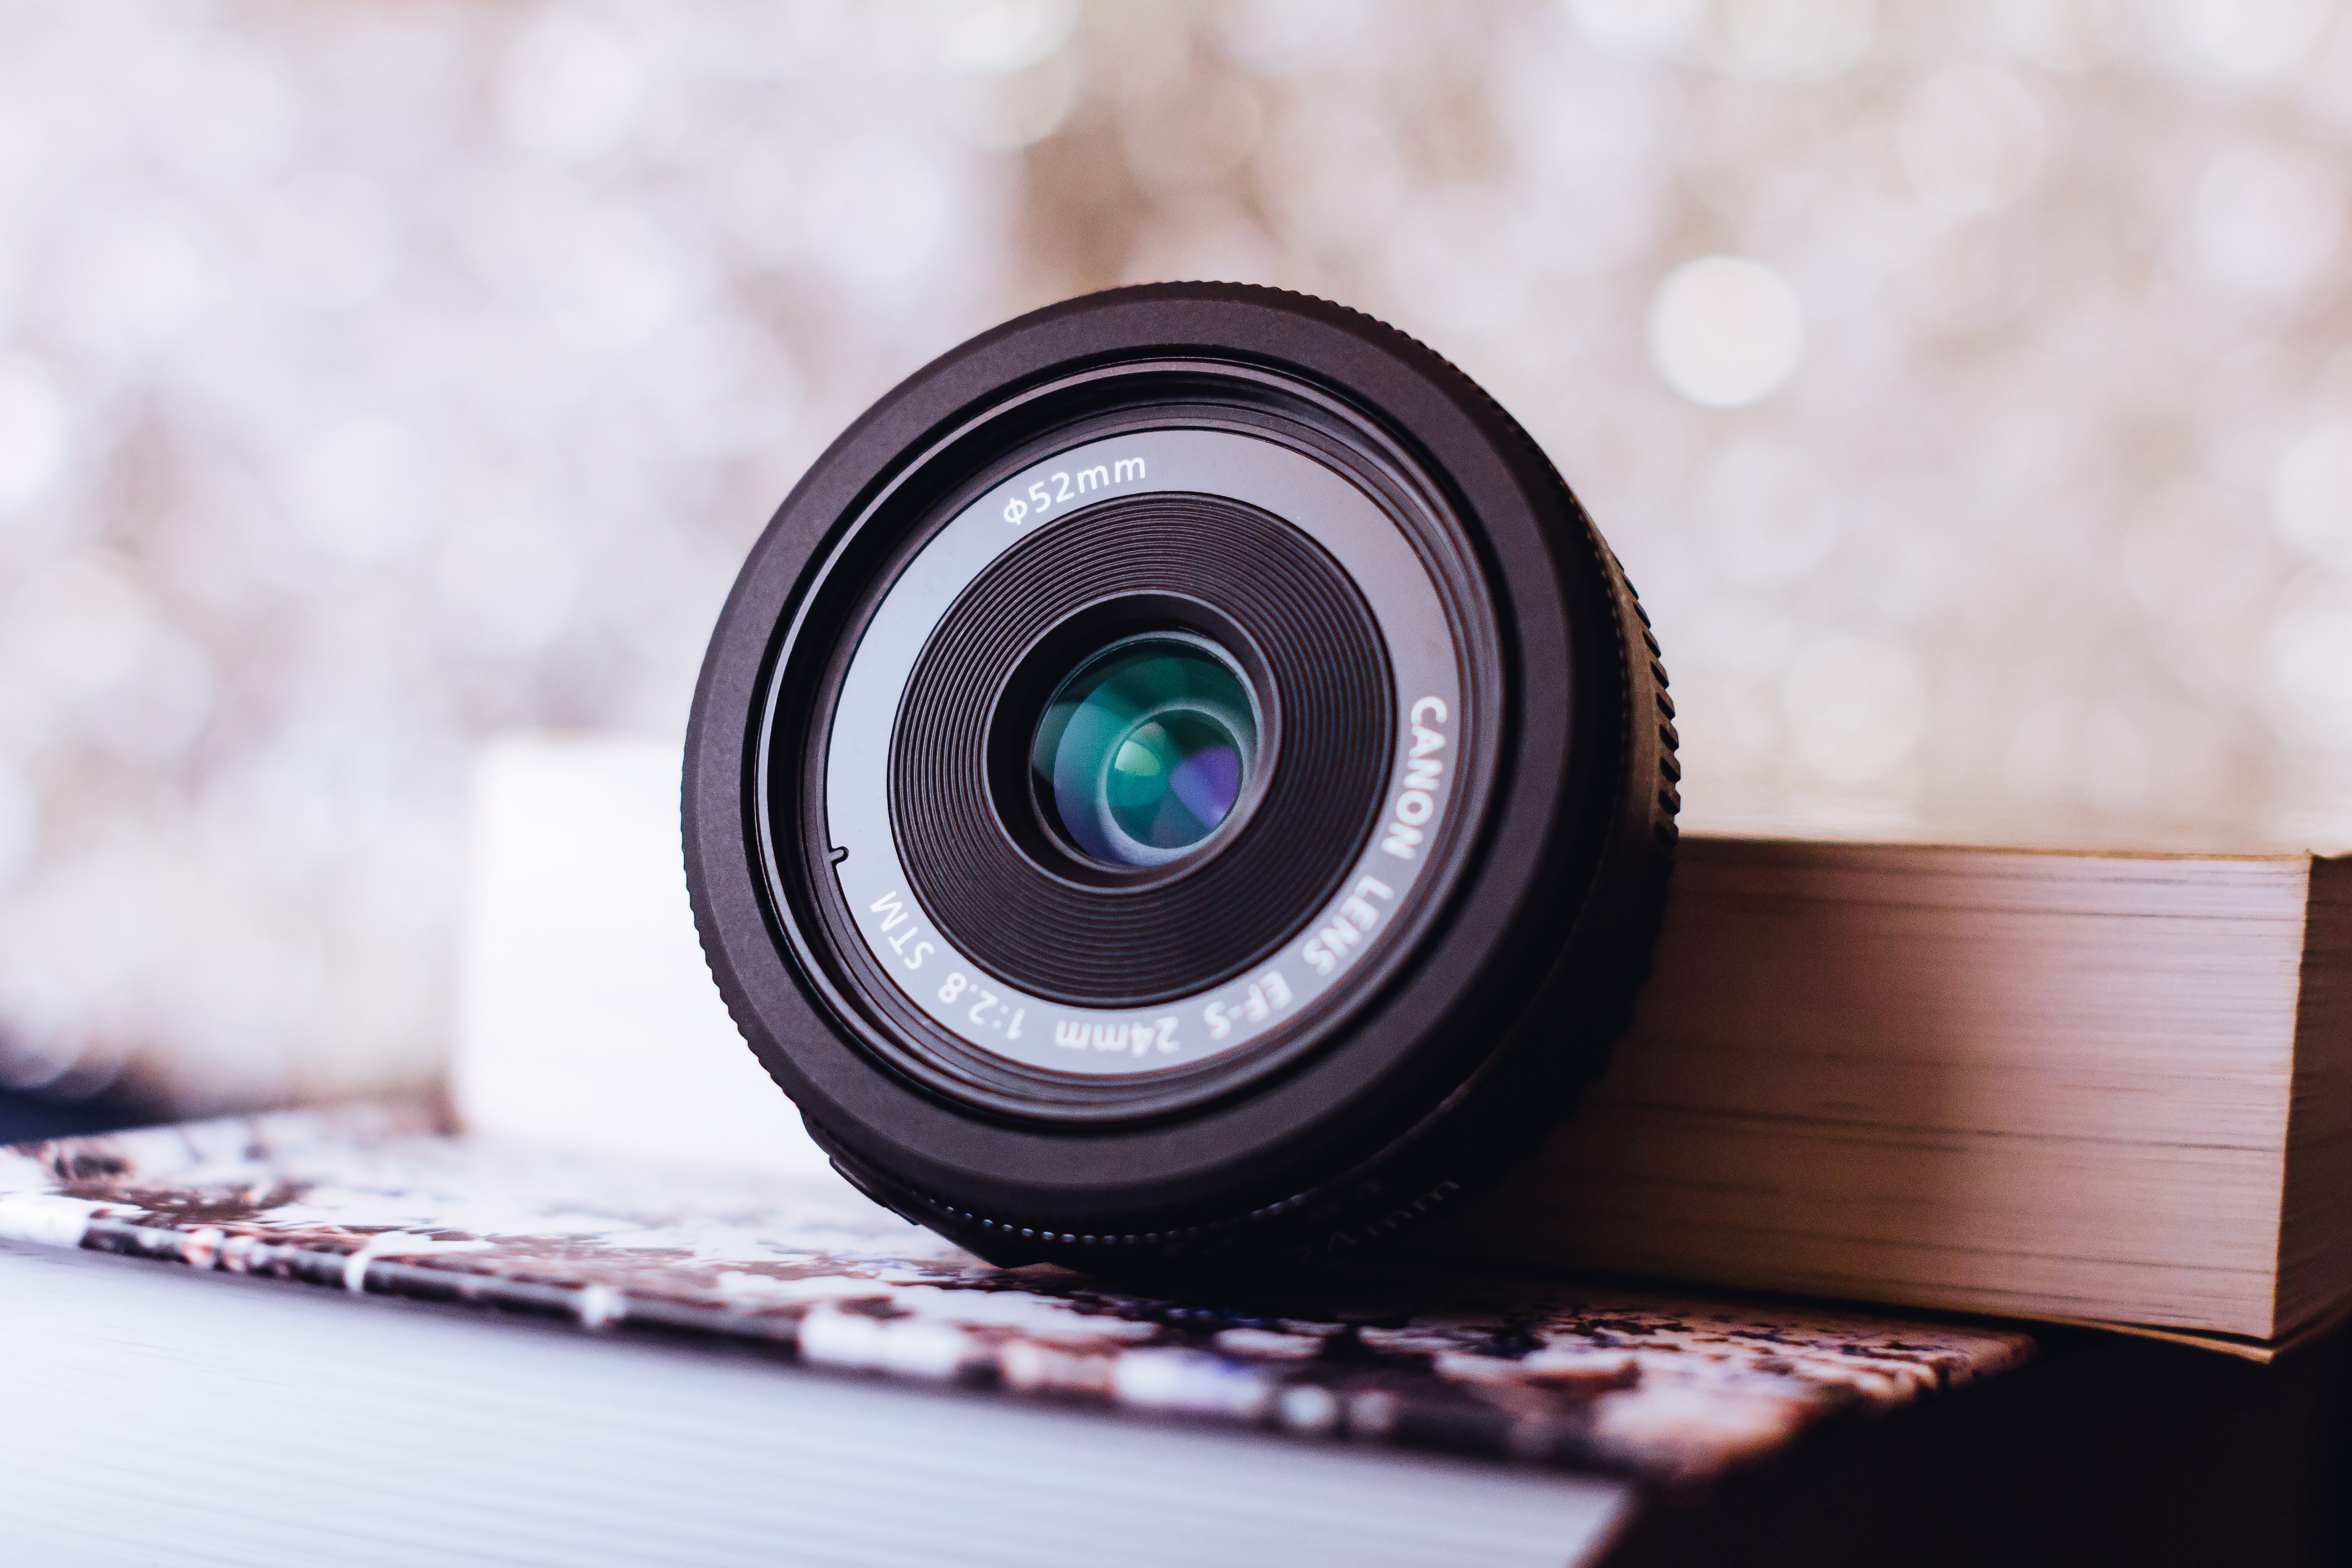 A boy in Alaska says his parents have set up cameras to stop him wanking. Credit: Pixabay/freestocks.org